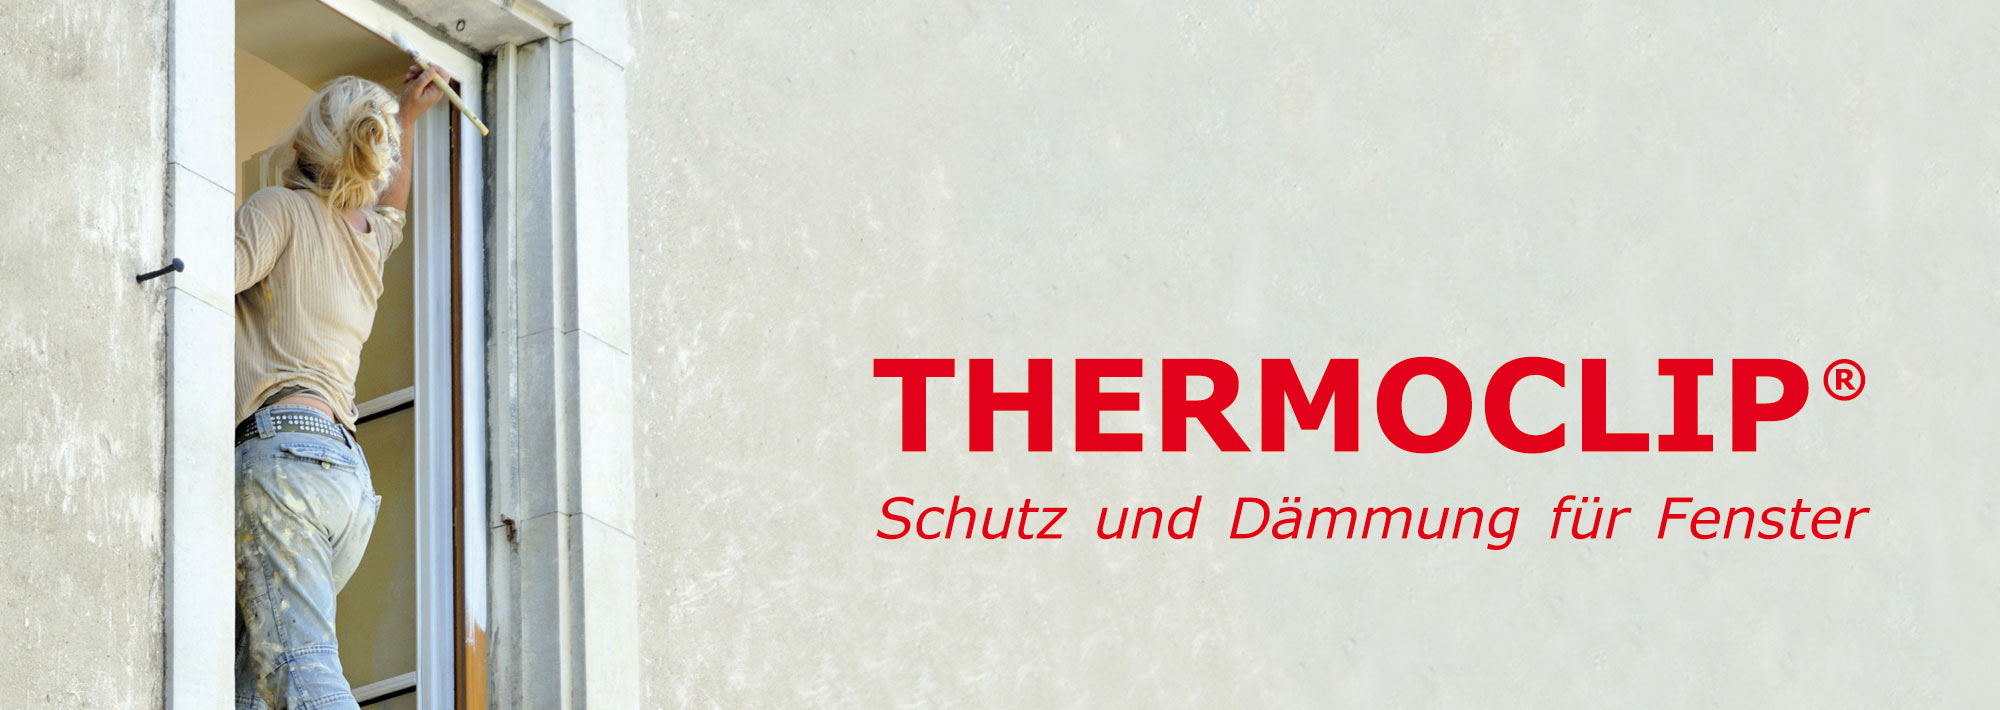 thermoclip1